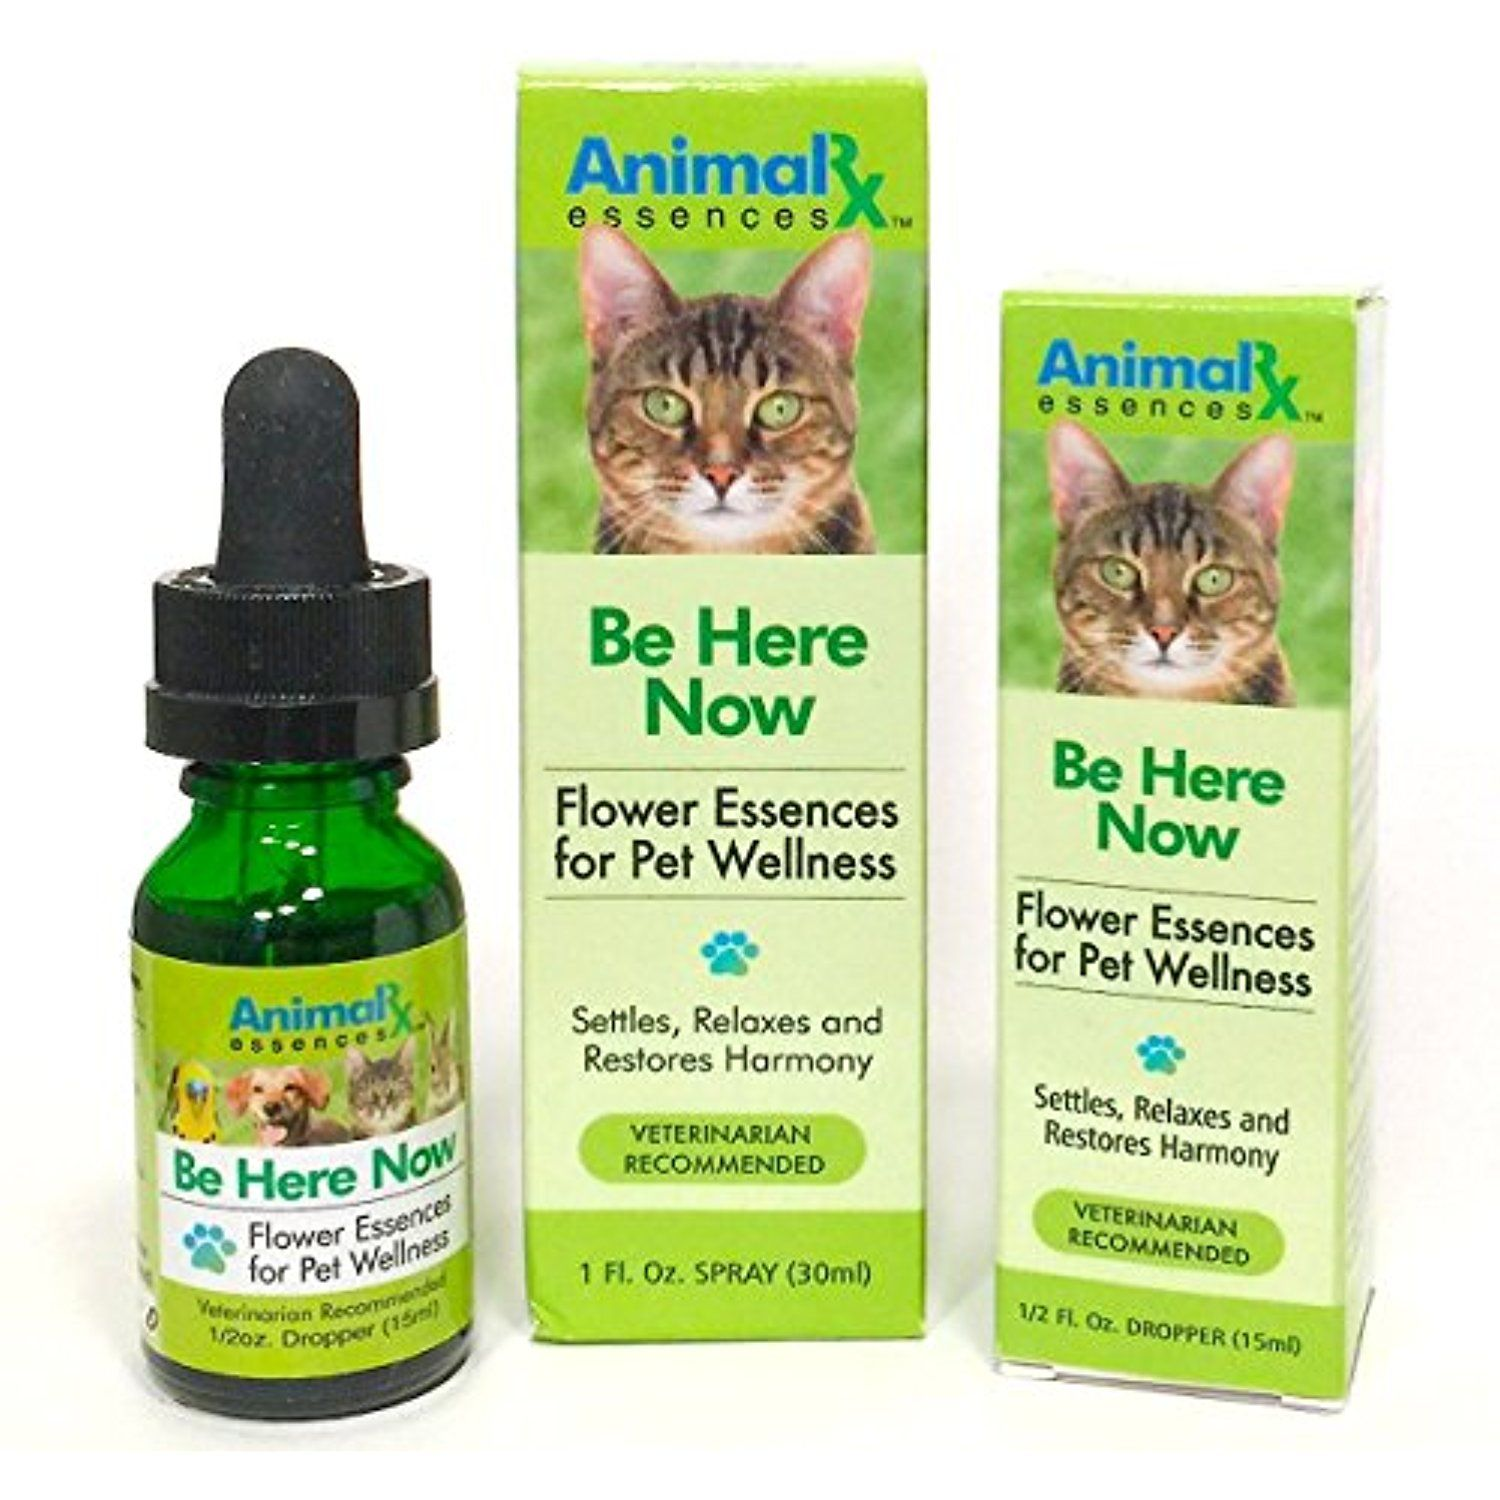 Be Here Now Flower Essences for Companion Animals (Dropper